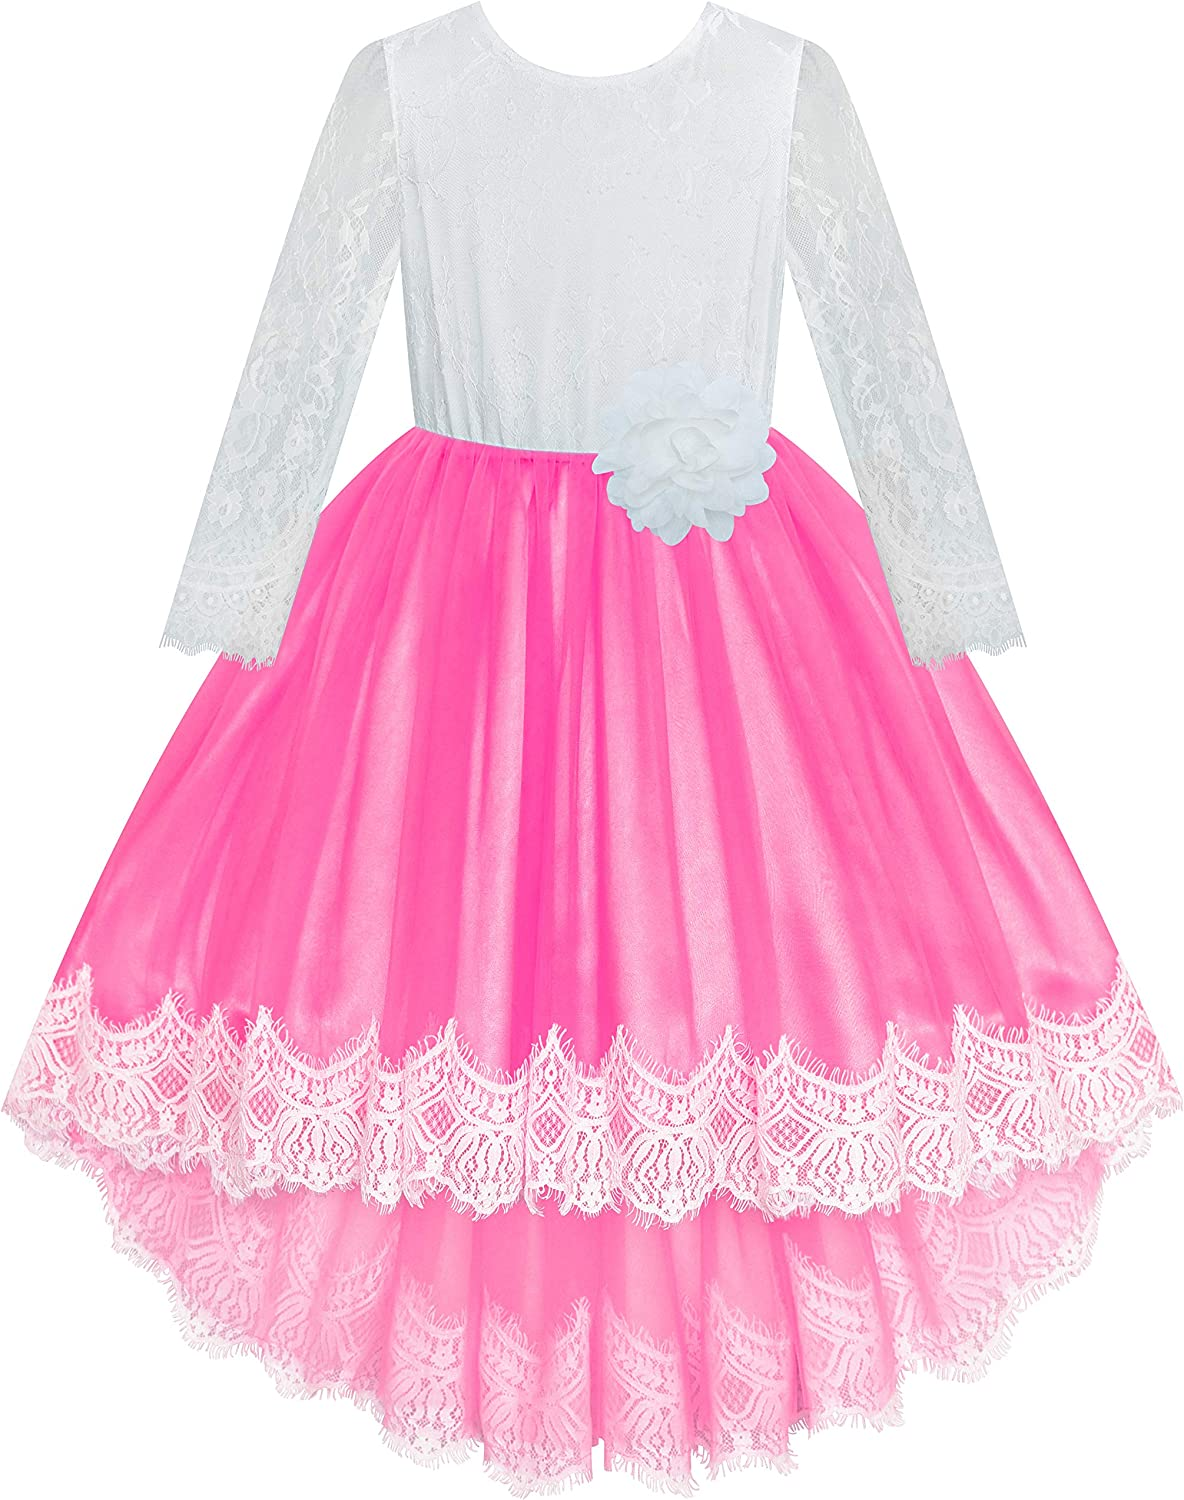 Sunny Fashion Flower Girl Dress Lace Hi-Low Skirt Blue Wedding Pageant Size 6-12